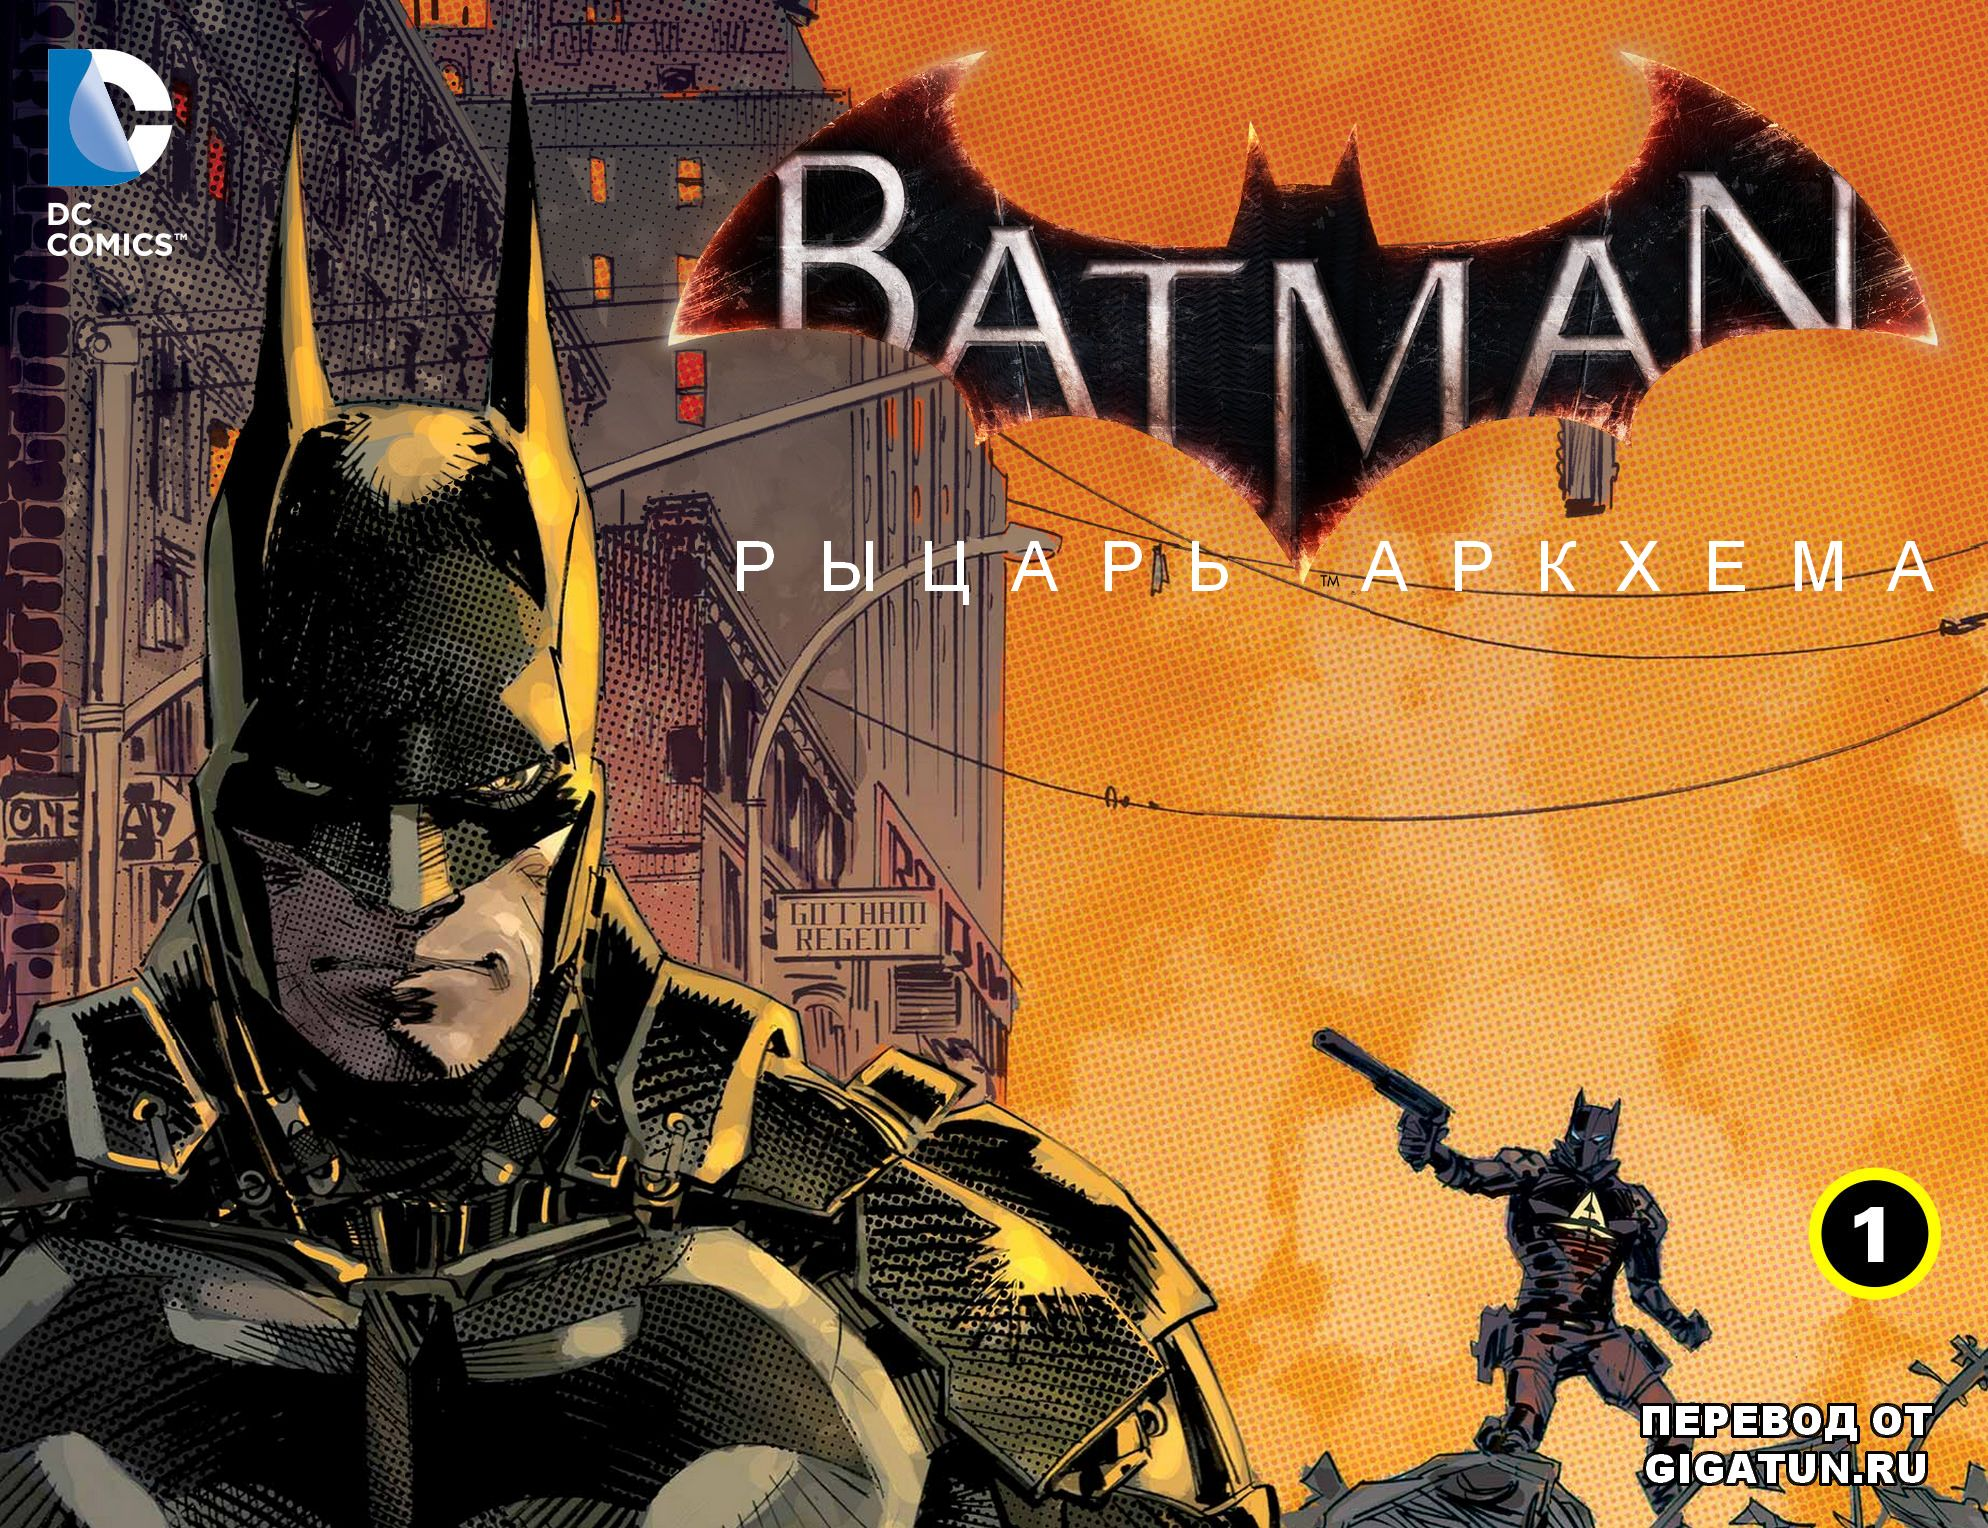 Бэтмен: Рыцарь Аркхема, Batman: Arkham Knight, Batman, Бэтмен, комиксы